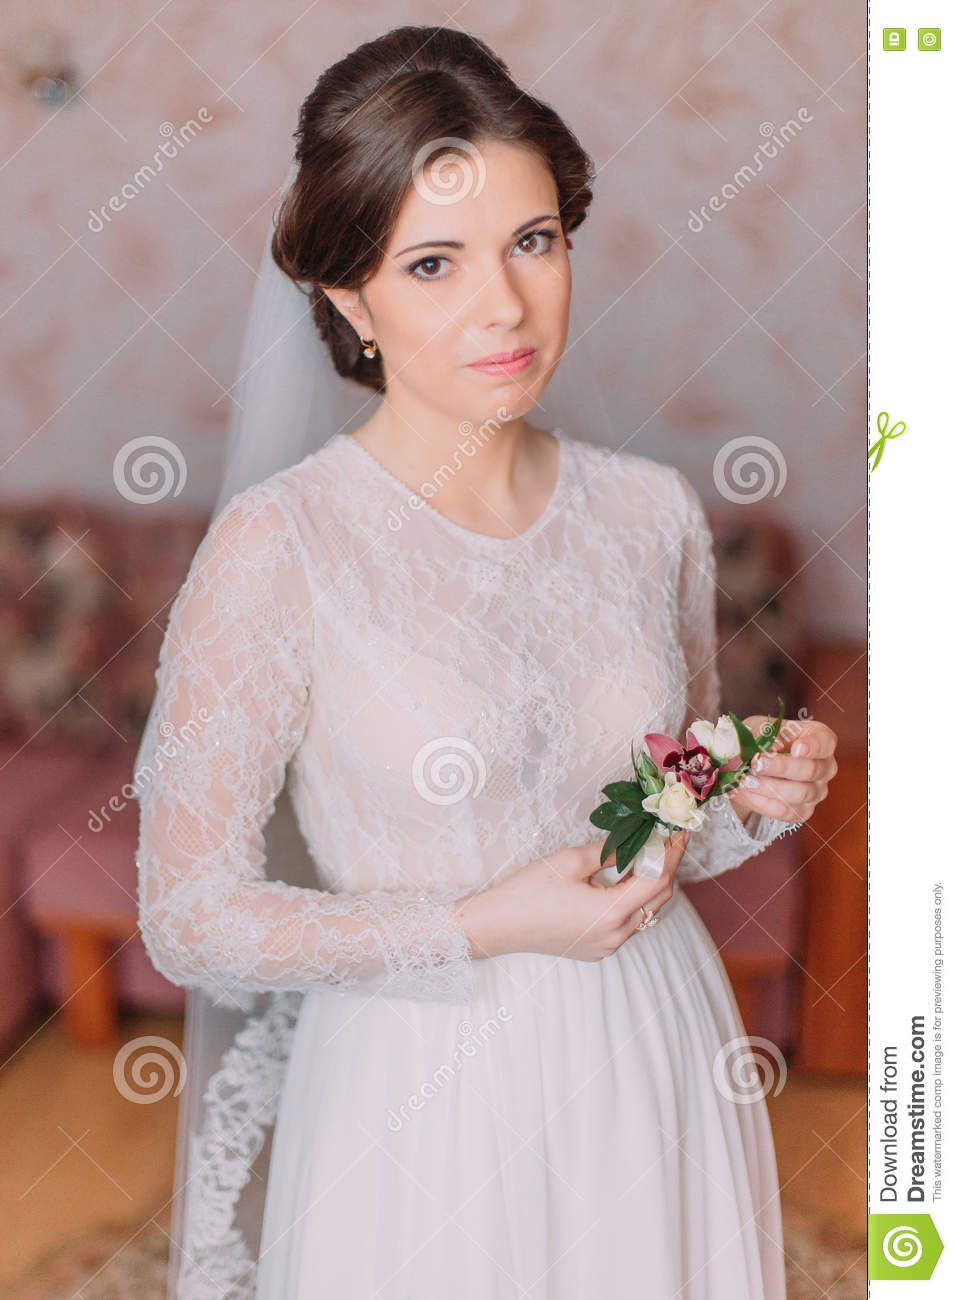 Cute Innocent Bride At Home In White Wedding Dress Preparations